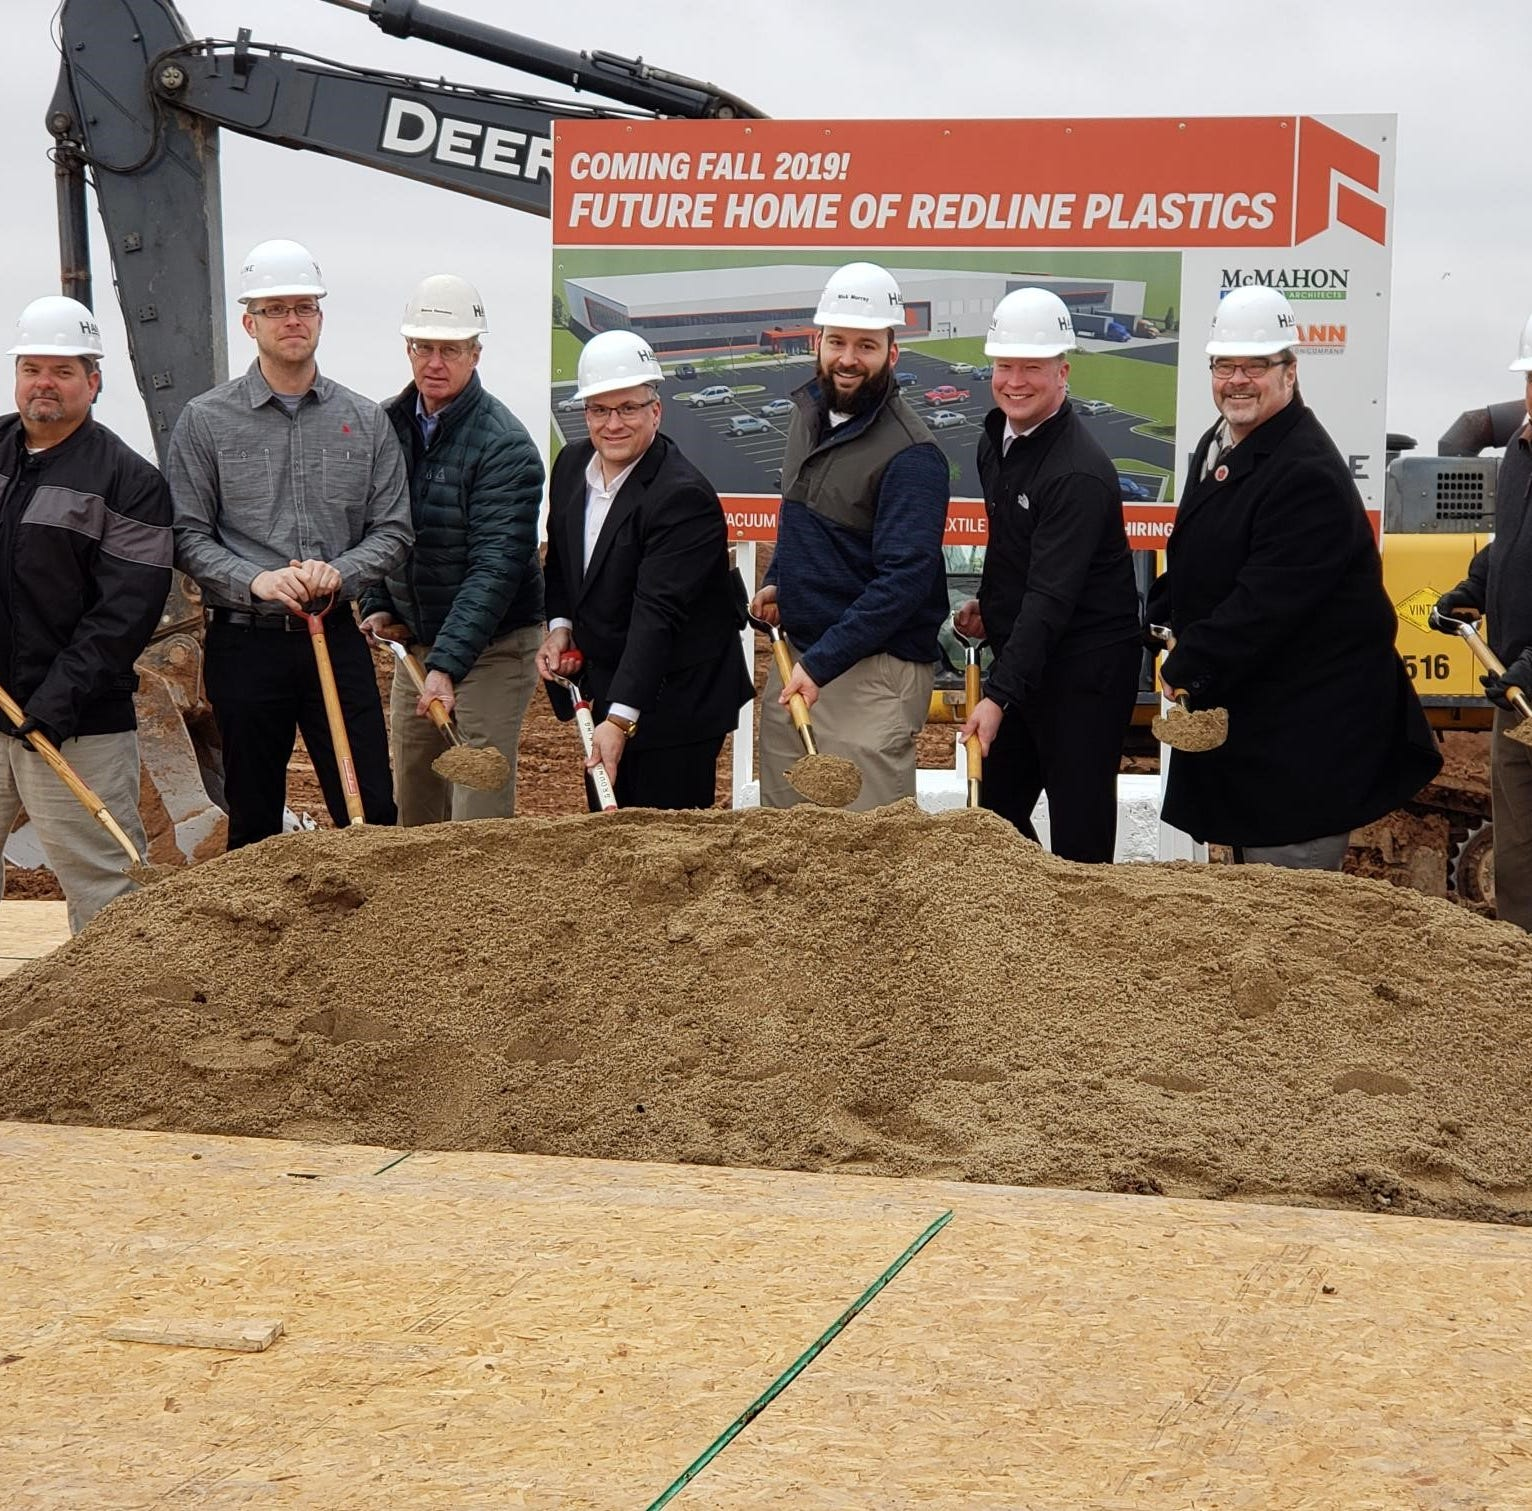 Redline Plastics breaks ground on new headquarters in Manitowoc I-43 tech campus